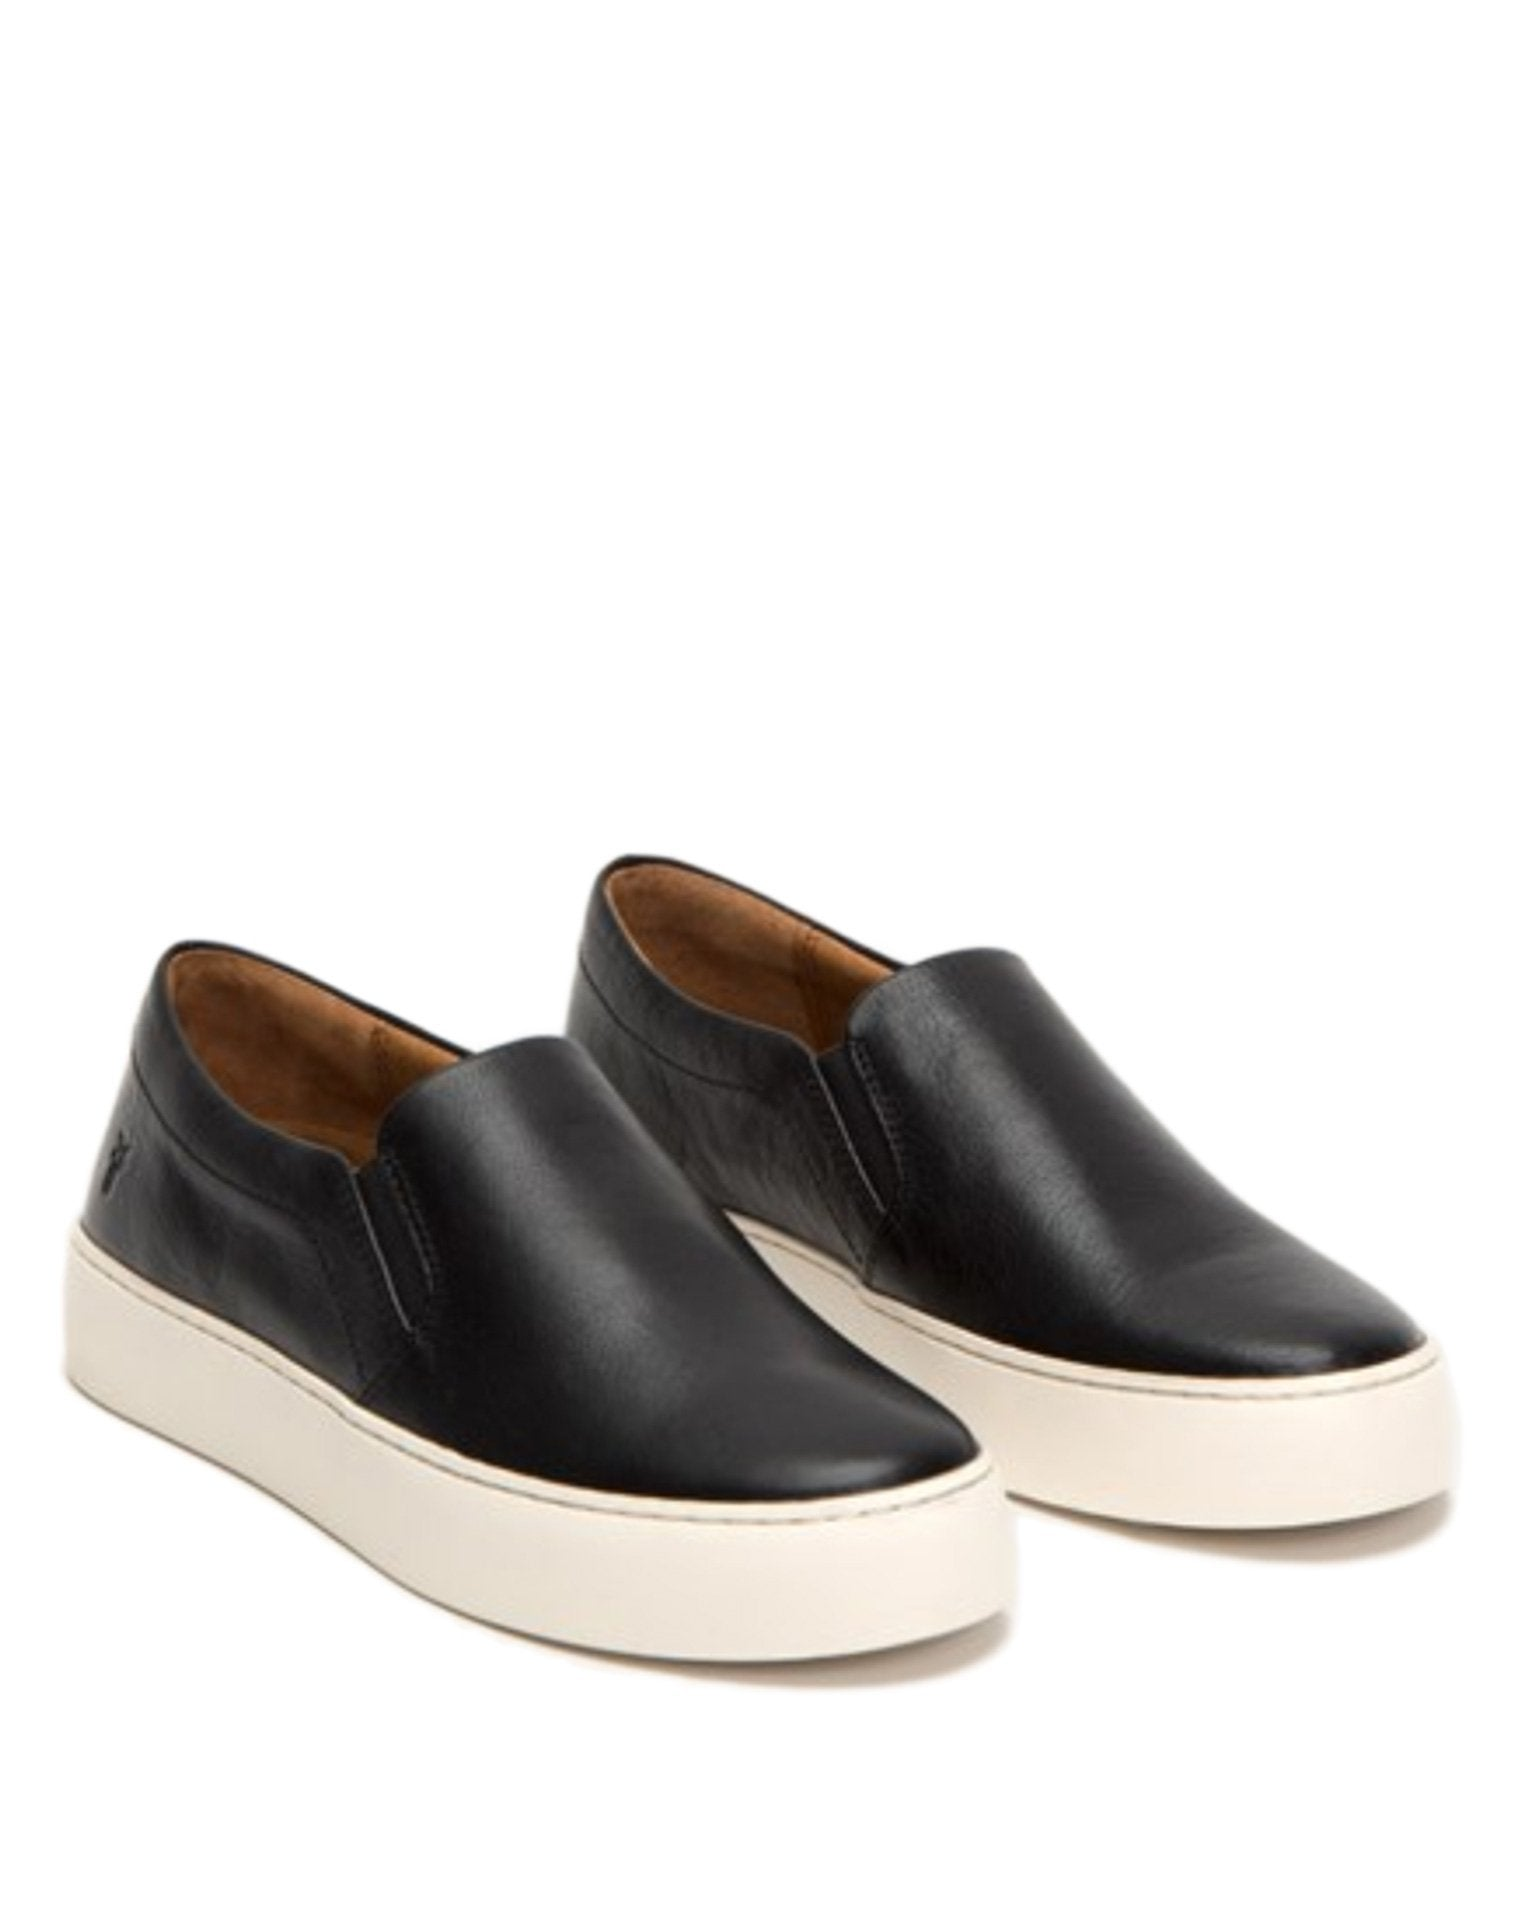 Frye Shoes Black / 6 Lena Slip On